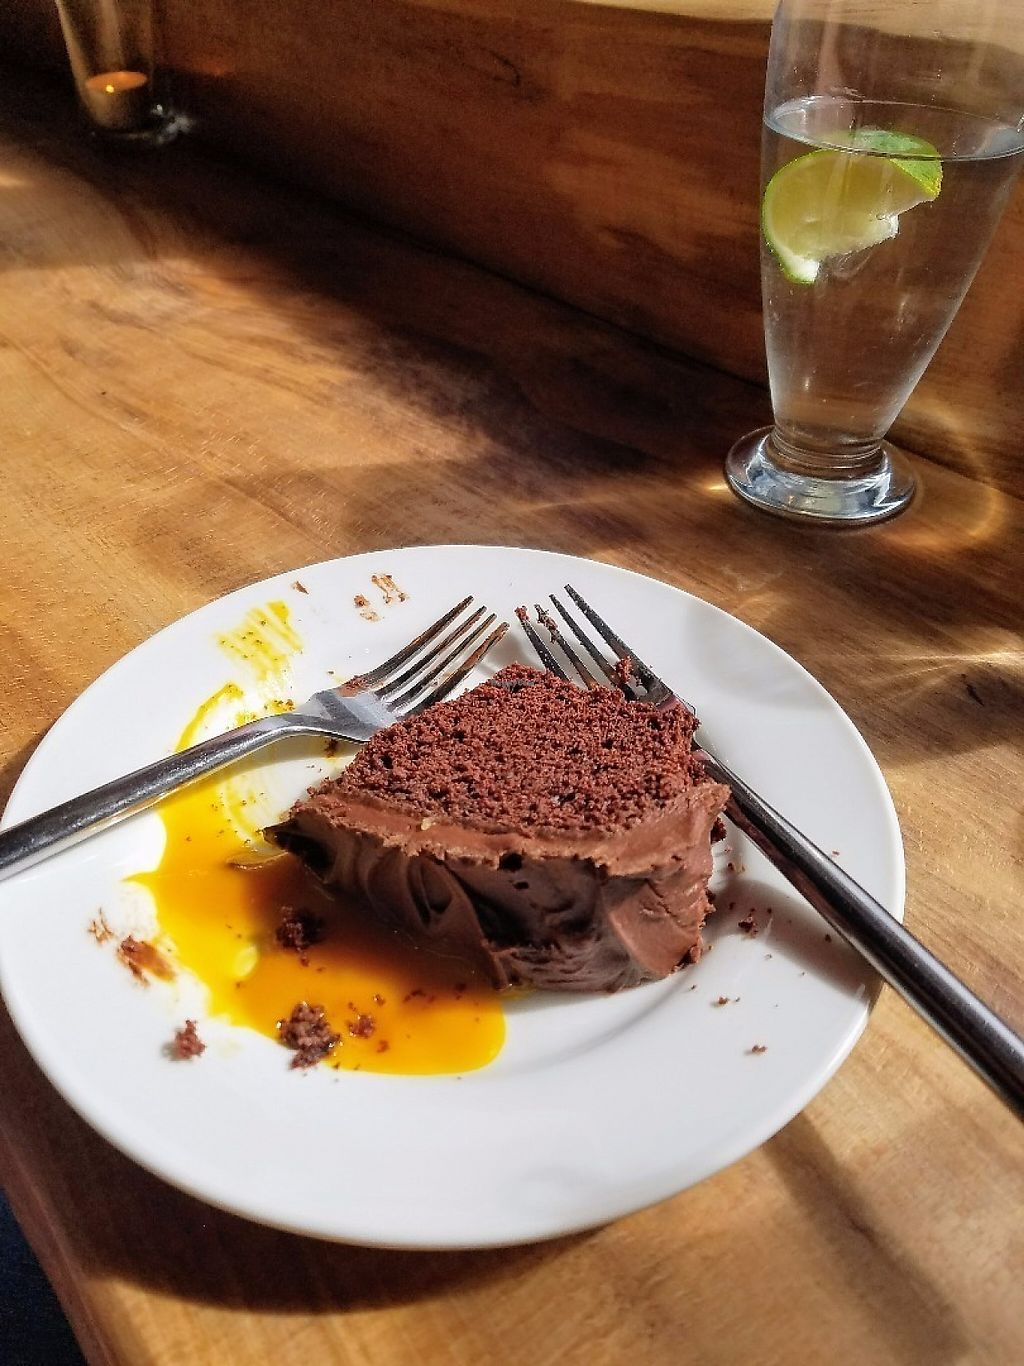 "Photo of The Old Fire Station  by <a href=""/members/profile/aimeelynn"">aimeelynn</a> <br/>Vegan Chocolate Cake (drool) with a mango sauce! <br/> May 20, 2017  - <a href='/contact/abuse/image/91570/260672'>Report</a>"